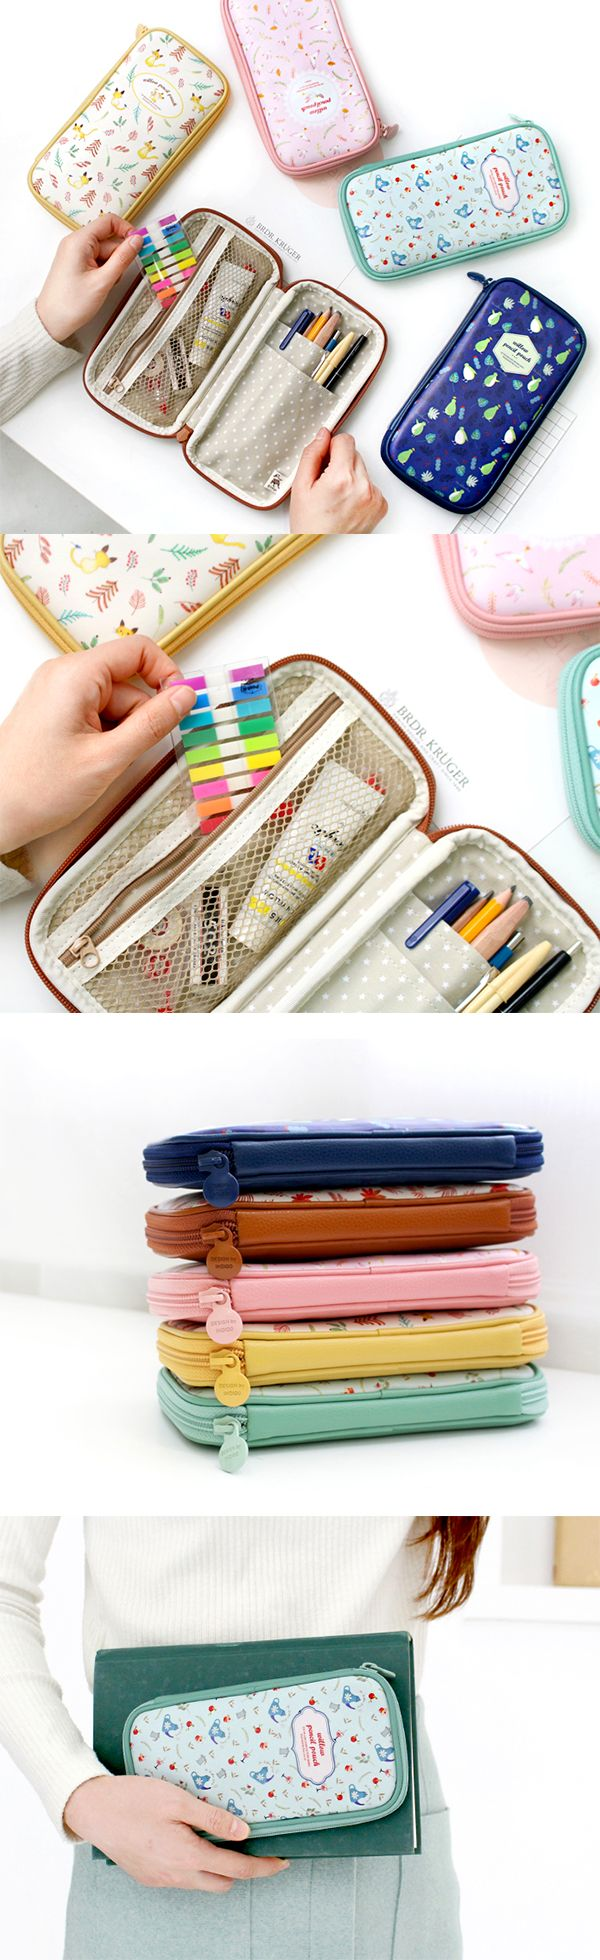 Simple pencil pouches don't cut it anymore! My pencil pouch needs to do more, like helping me organize my supplies & protecting them from wearing out! This adorable pouch has a zippered pocket on one side & 2 open pockets on the other so my stuff won't fall out when I open it. I can keep my erasers & index sticky notes in the zippered pocket while my pens, pencils, & scissors go into the open pockets. All 5 styles are lovely & I can also use this pouch for my makeup, knitting, or craft…